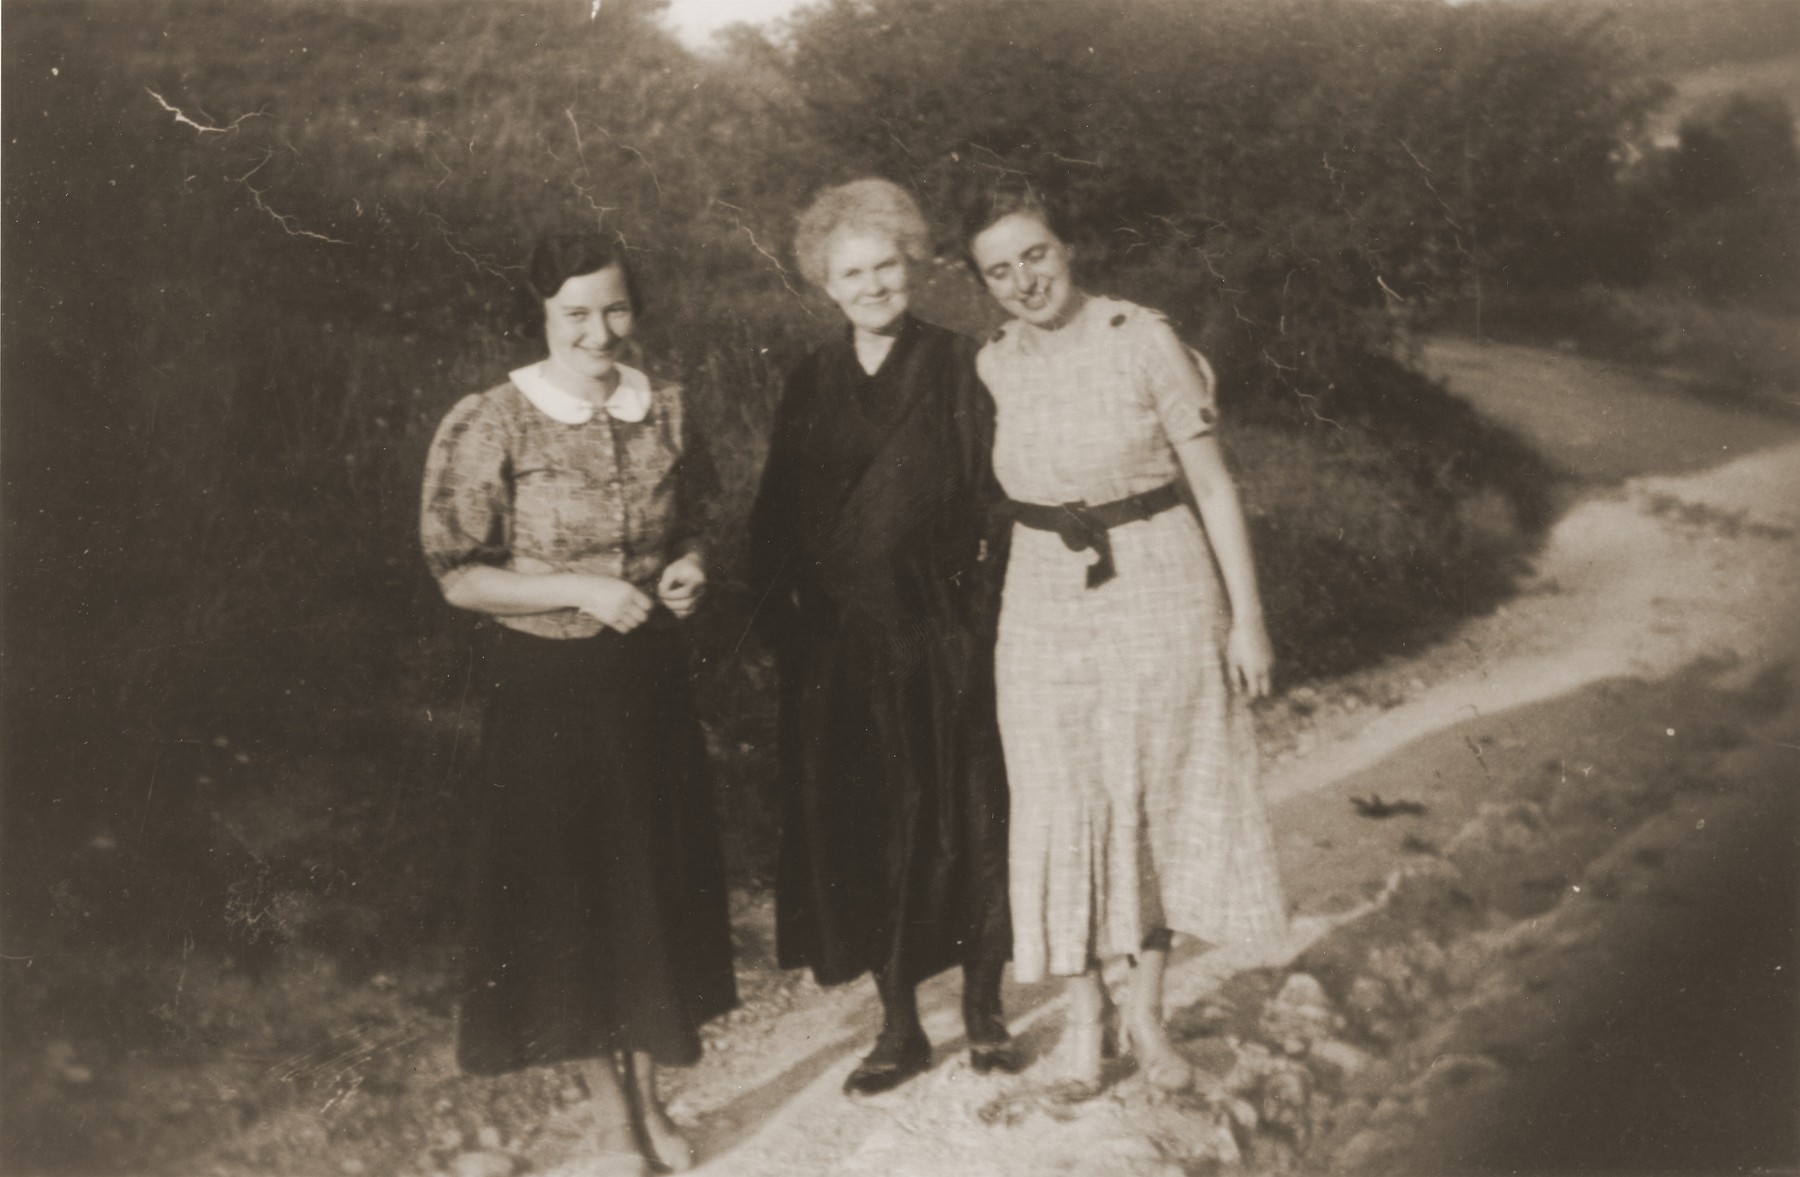 Mathilde Stern walks along a dirt path with two of her daughter-in-laws, Resi (left) and Hedva (right).